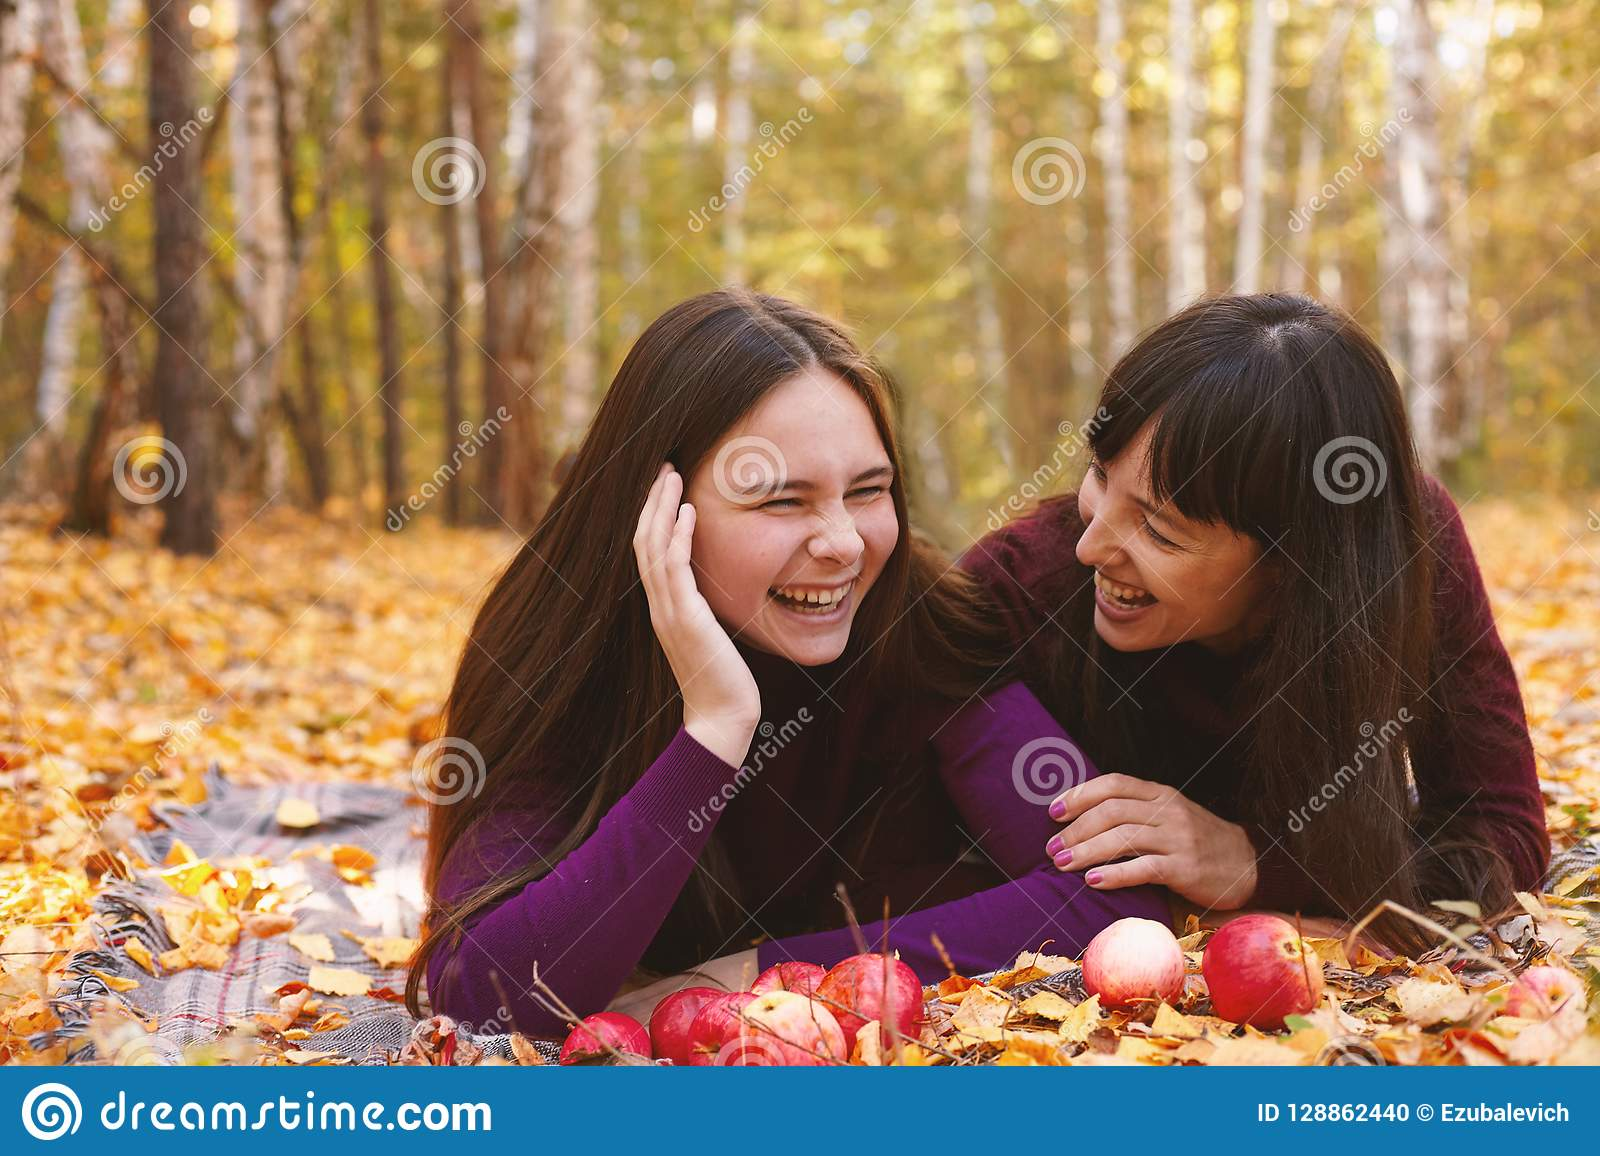 Cute portrait of mother and daughter in the autumn forest.